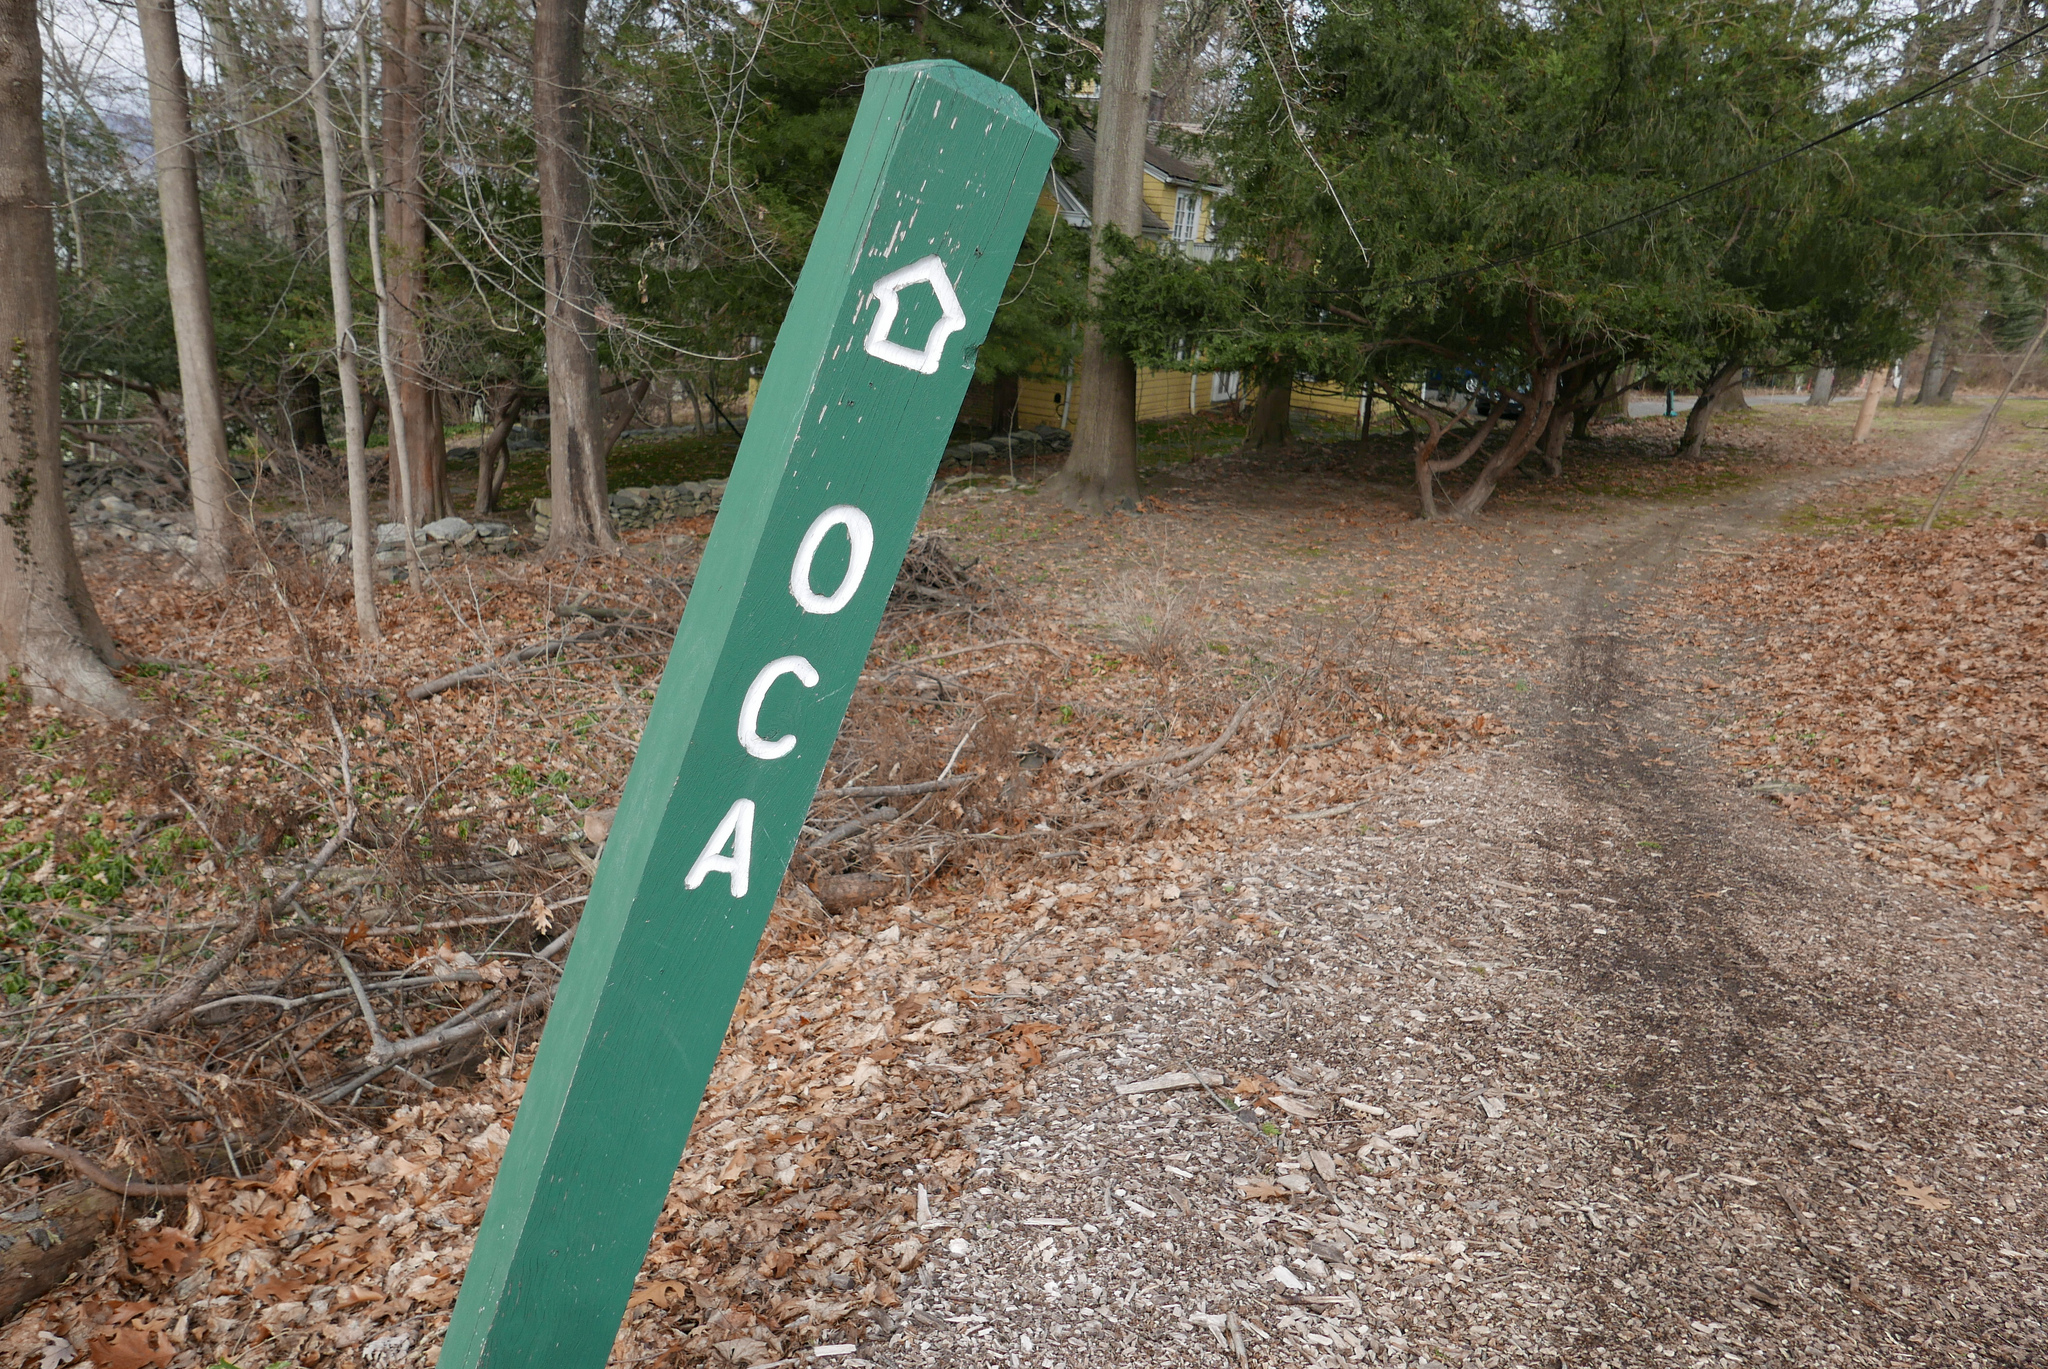 The OCA trail was marked pretty well. As it moves south, through some pretty densely populated northern suburbs of New York City, the train maneuvers through backyards, parking lots, stairs and regular streets.